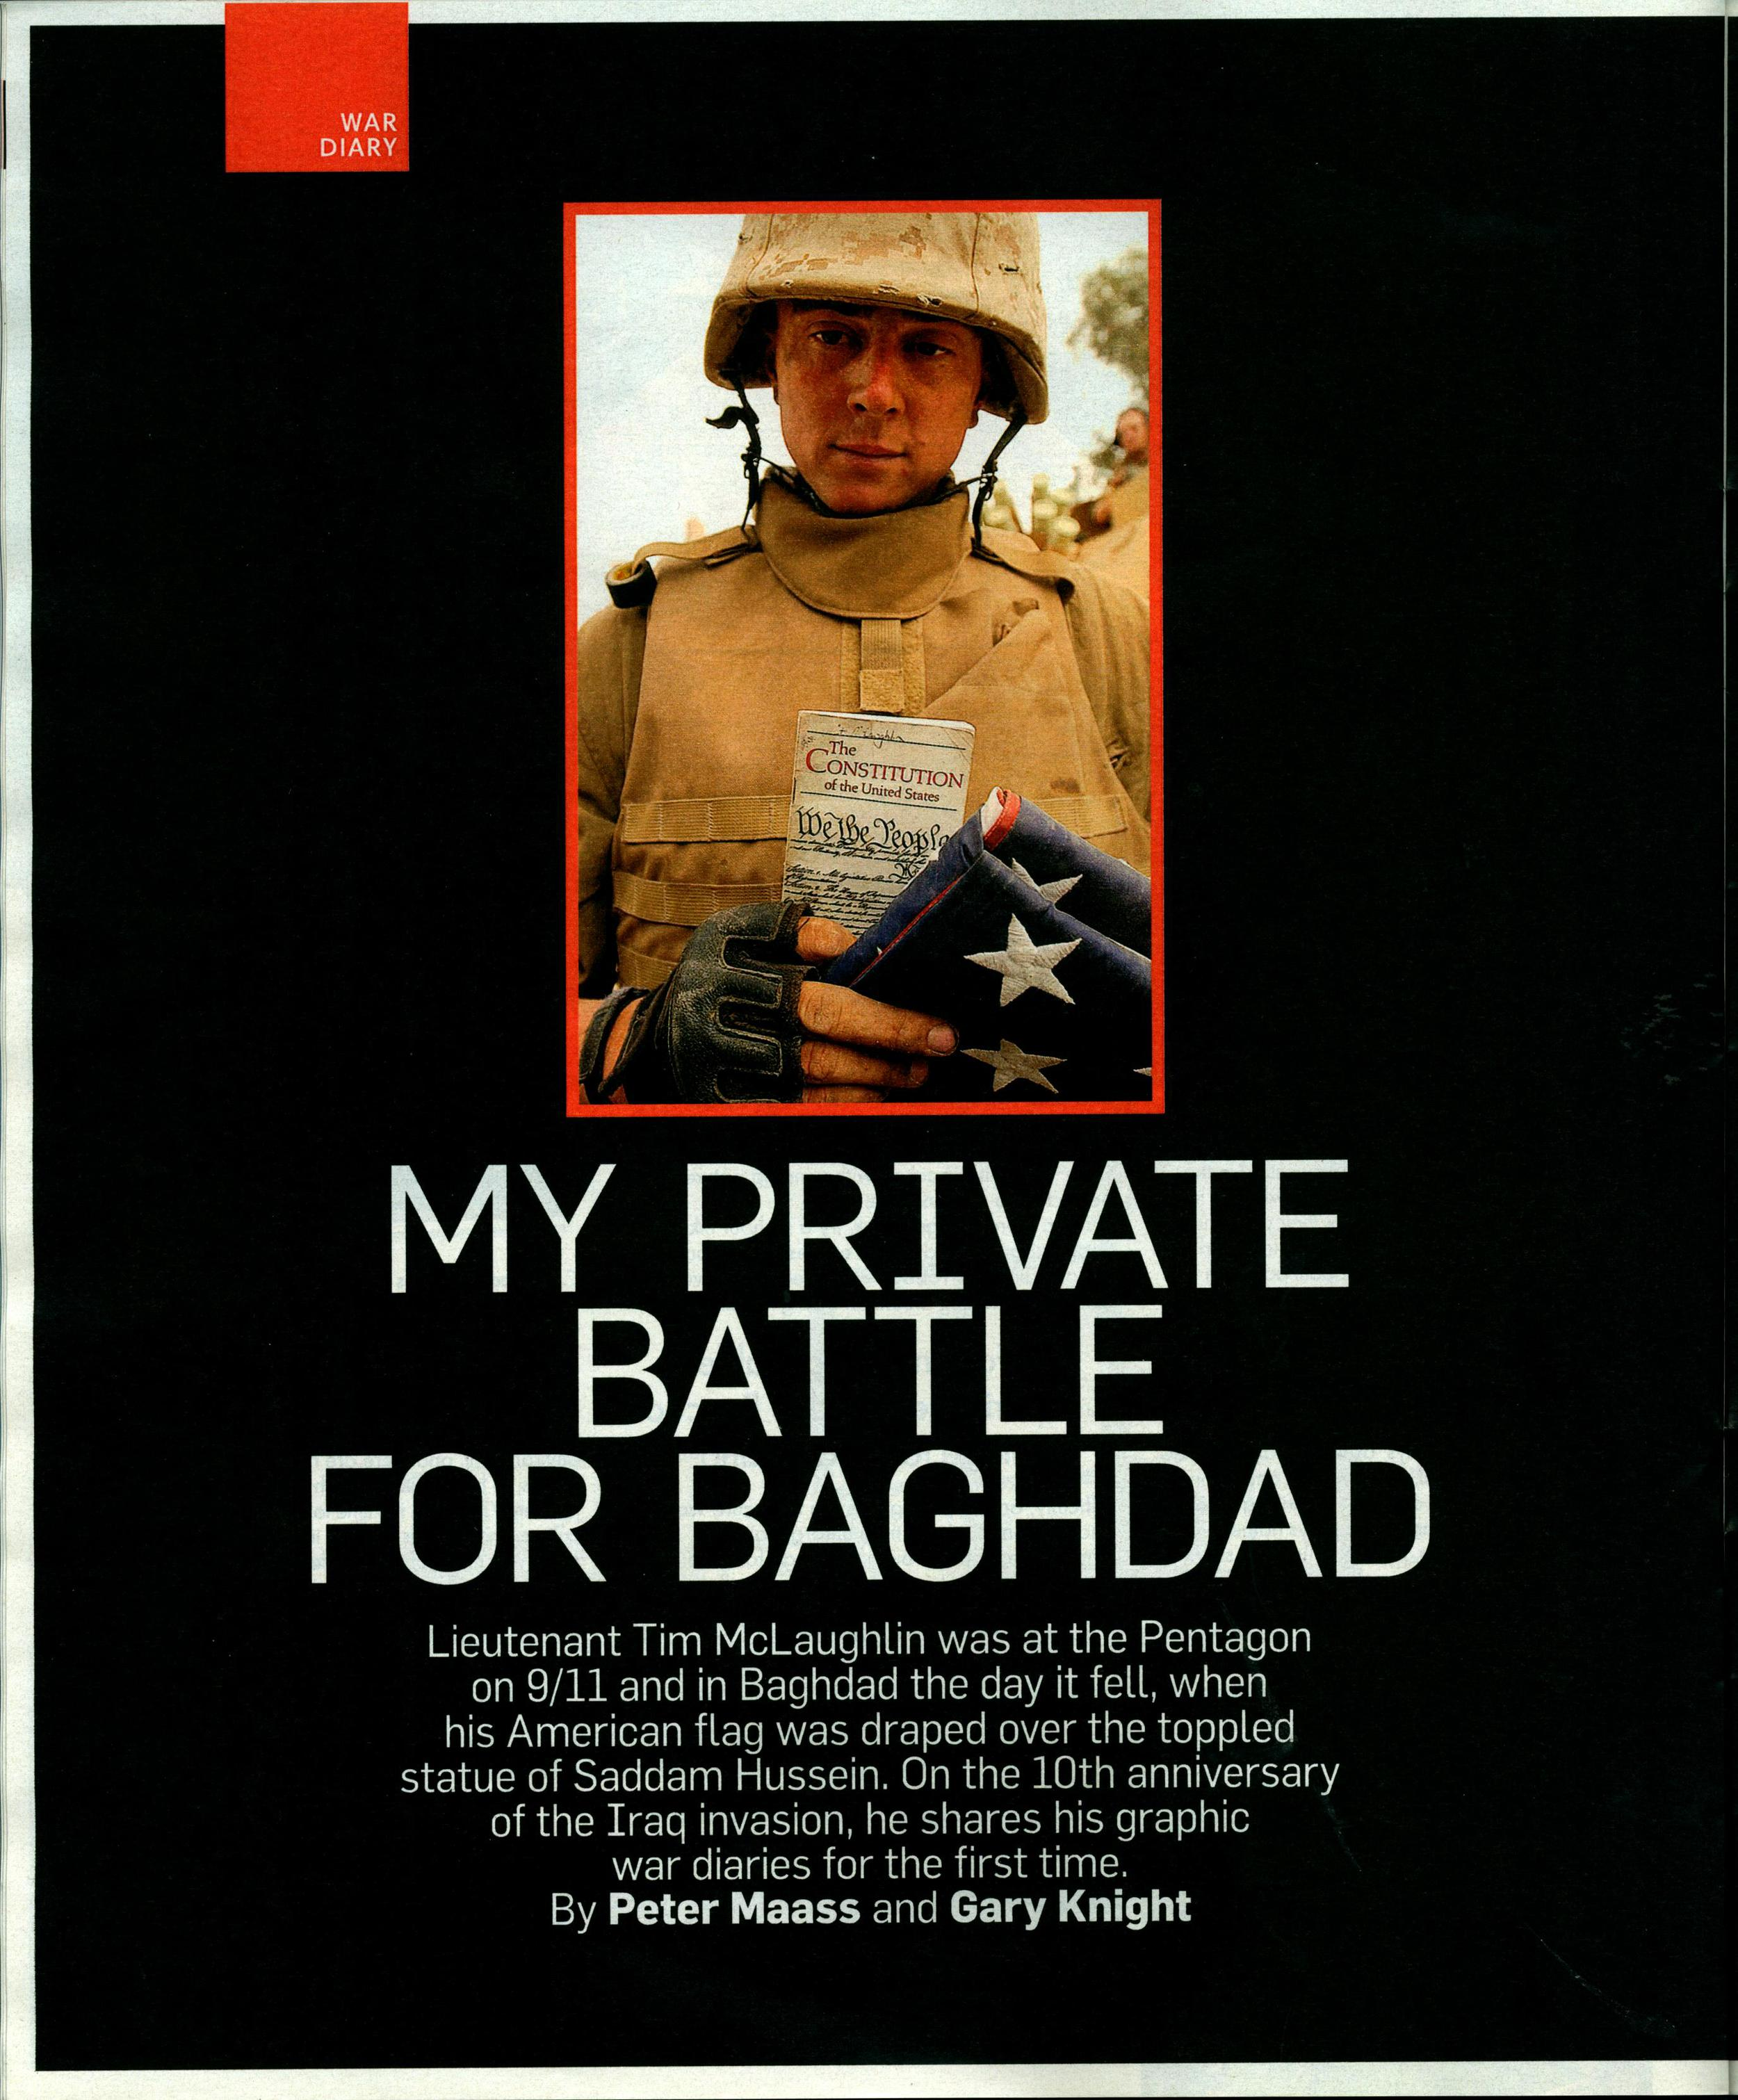 03032013_THE SUNDAY TIMES MAGAZINE_BAGHDAD0001.jpg